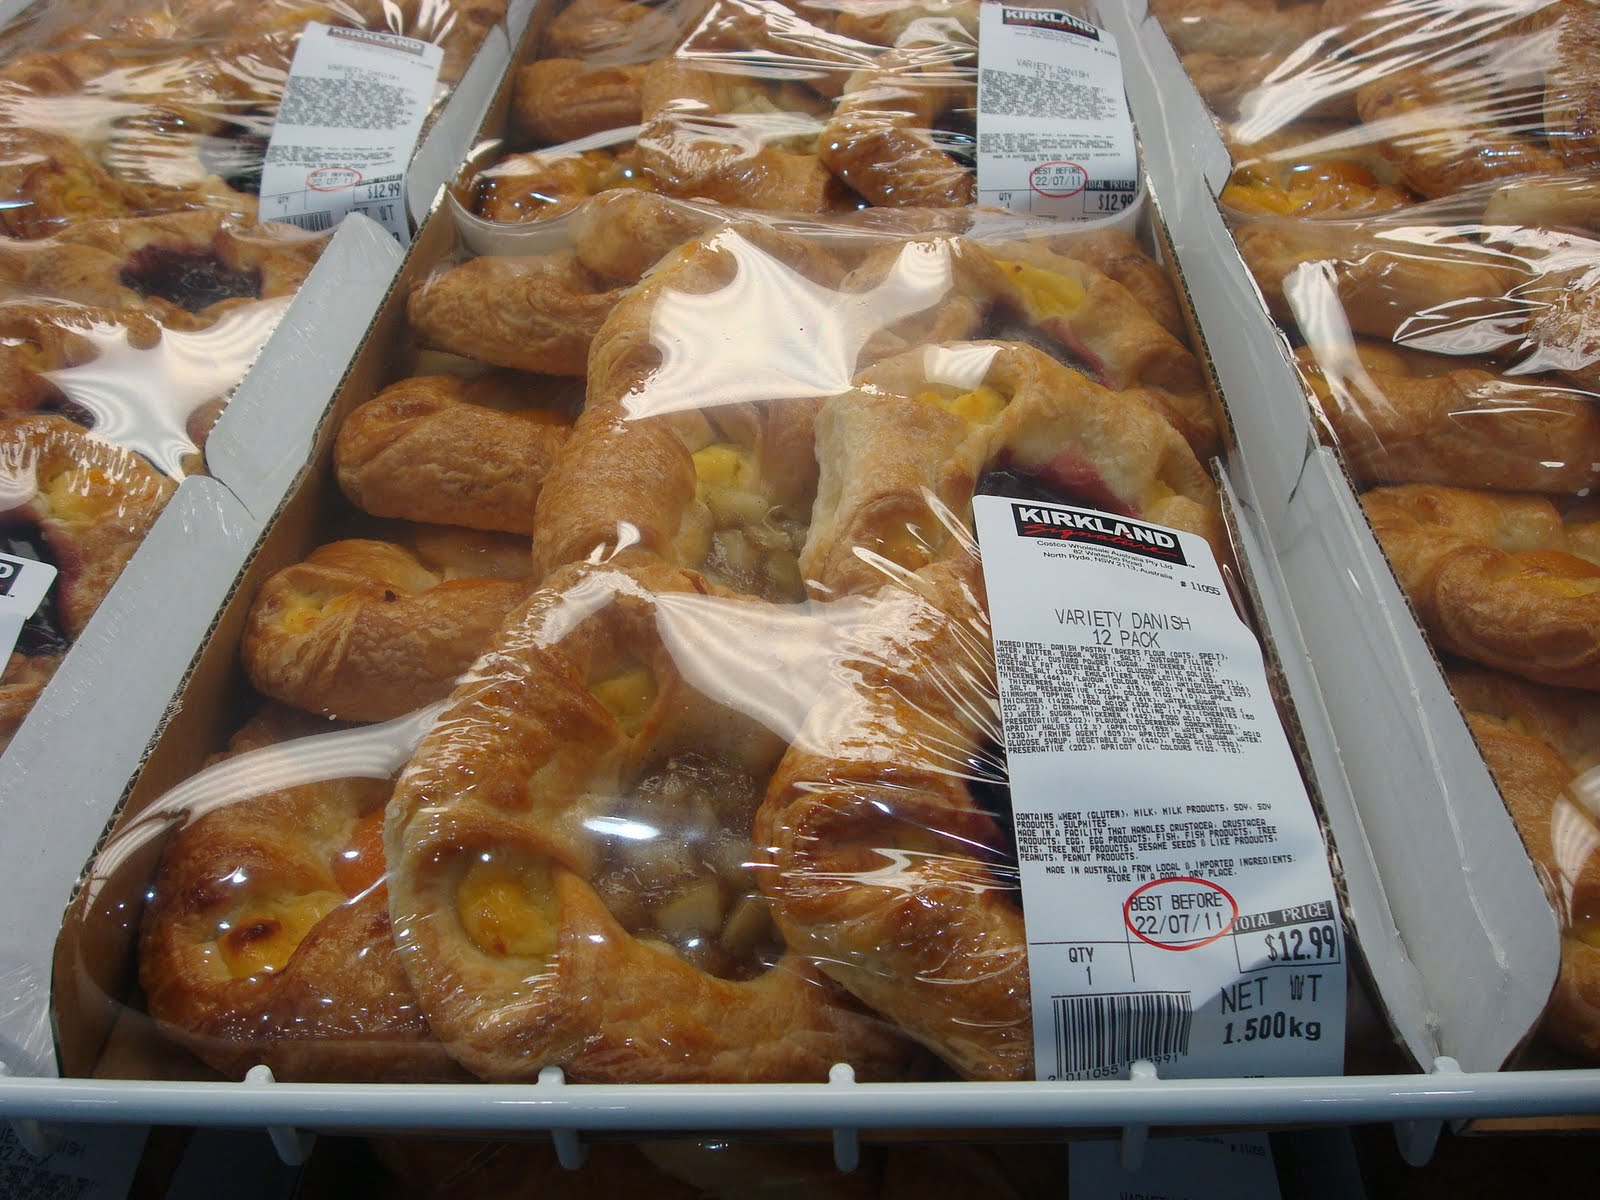 Costco Bakery Pies And Cakes